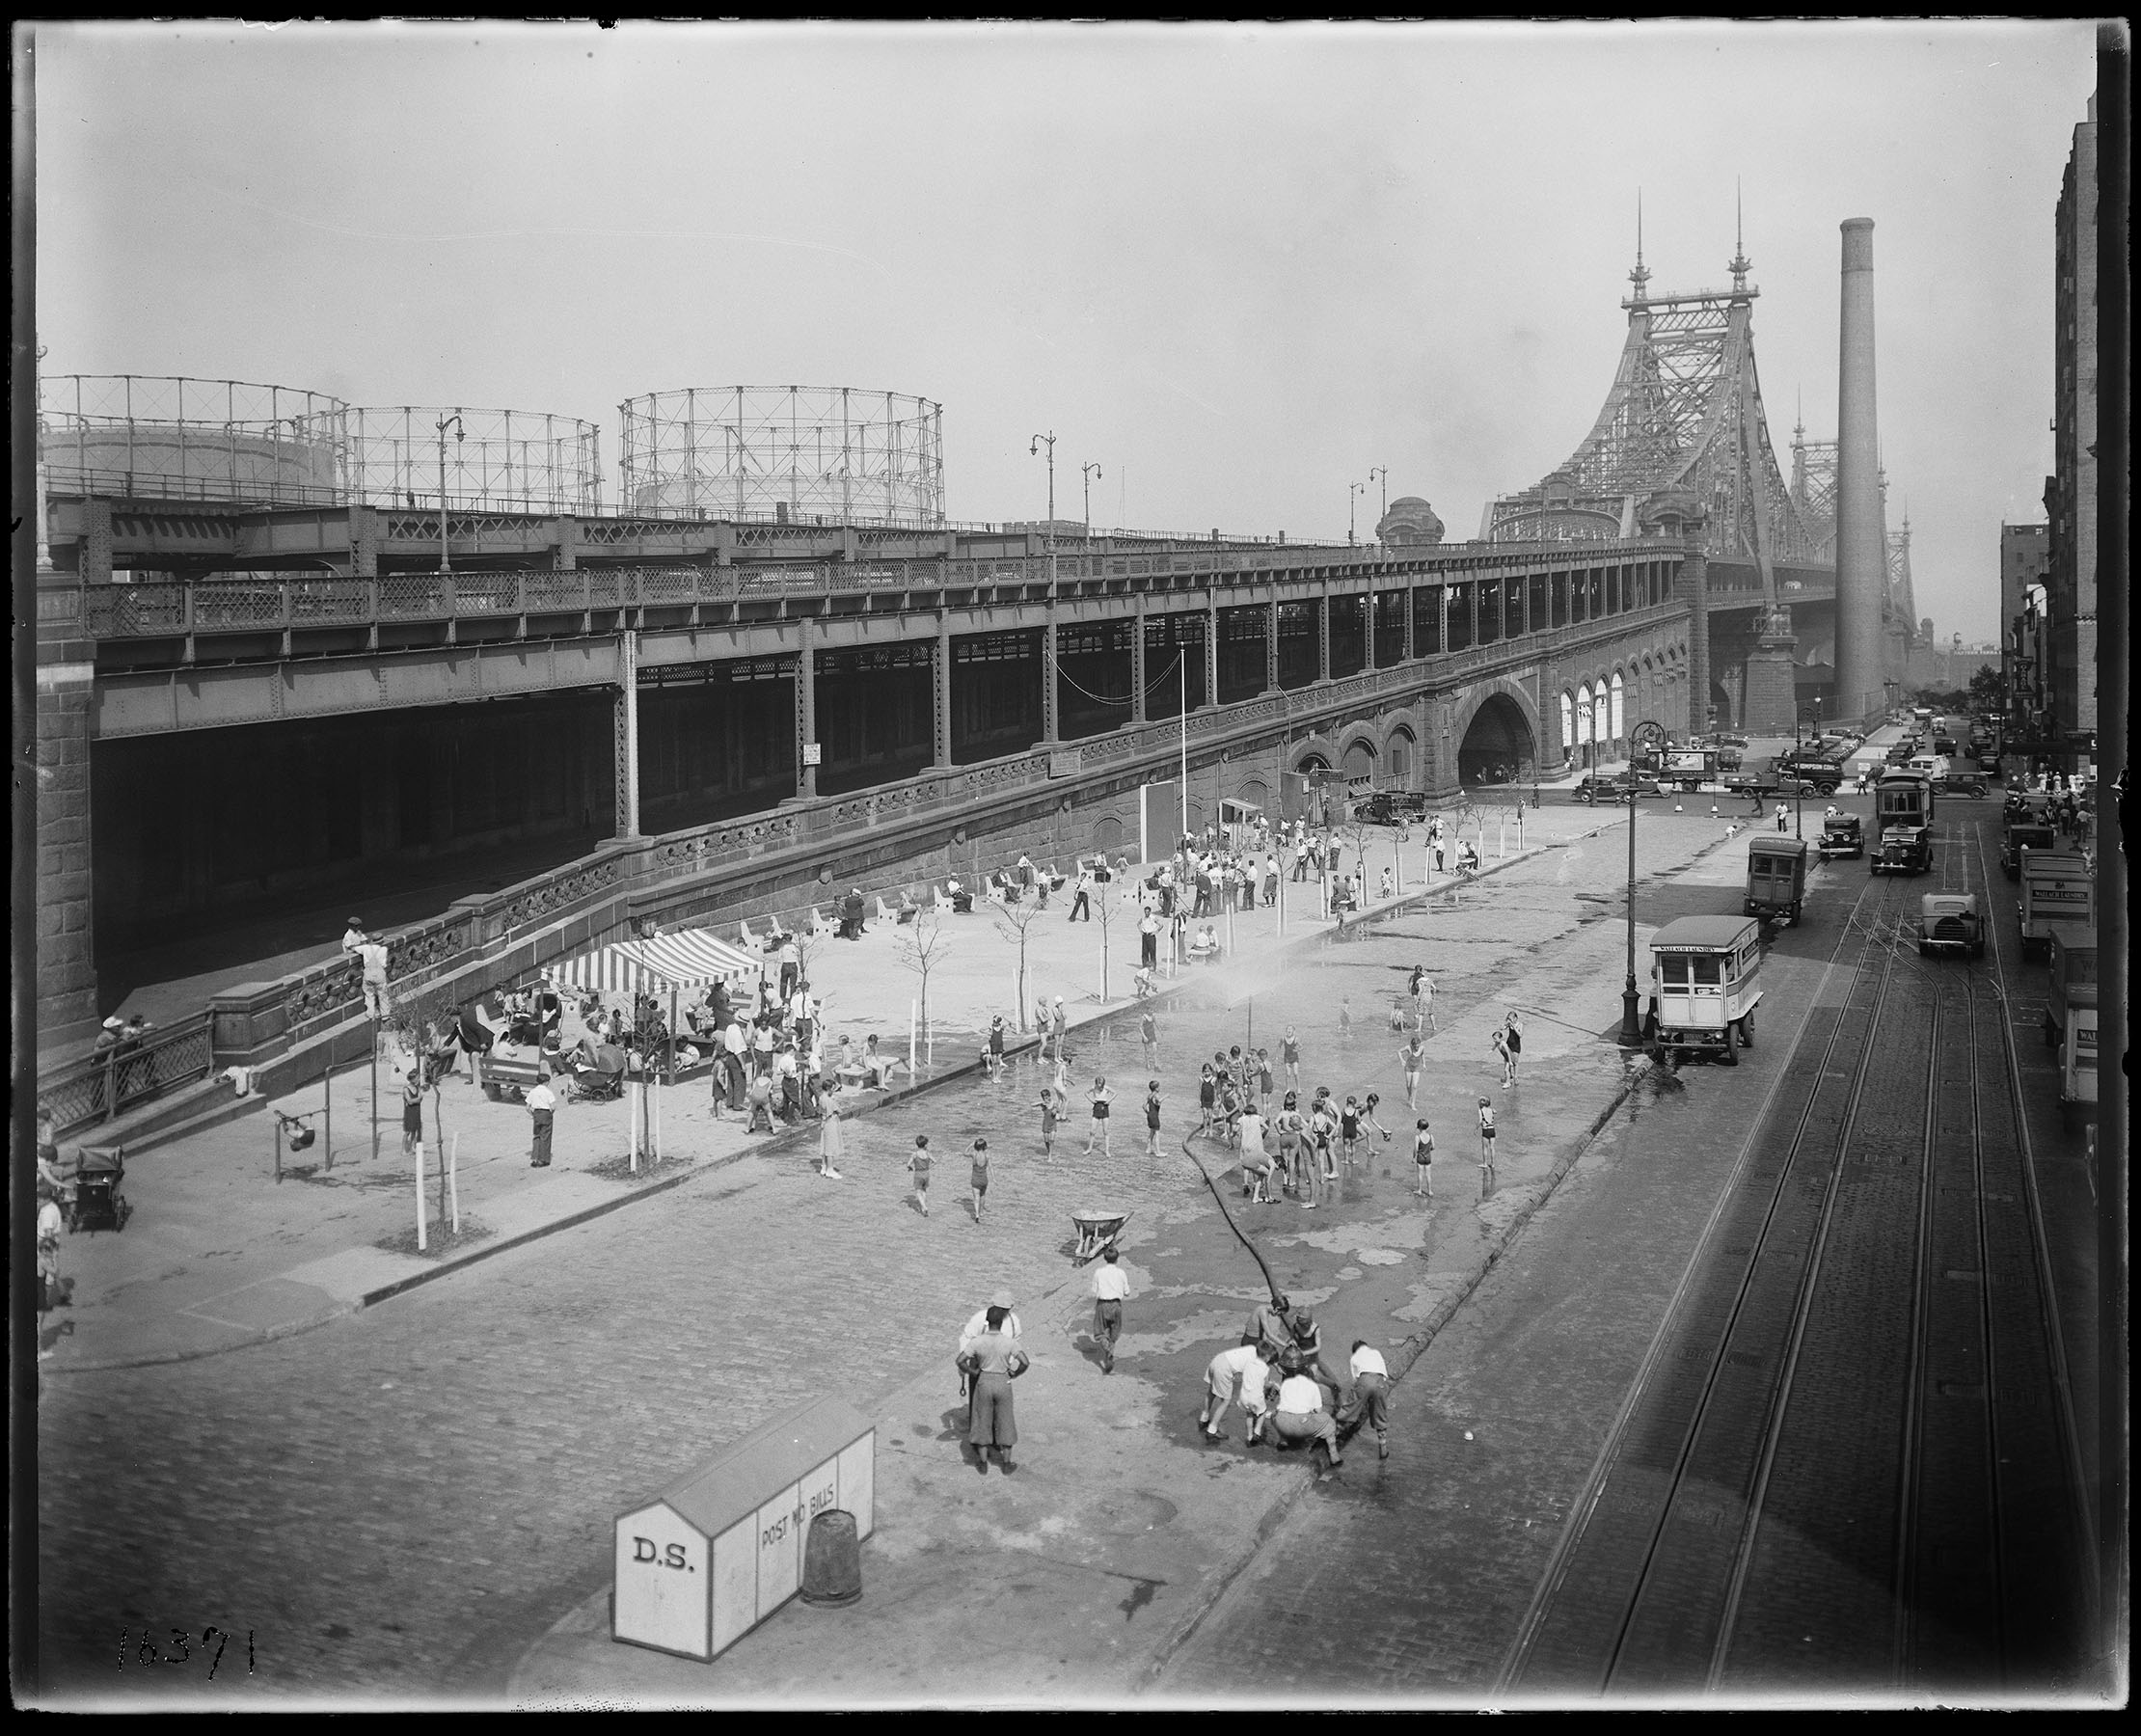 Play Street and street shower alongside the Queensboro Bridge, June 22, 1934. Department of Bridges, Plant & Structures Collection, NYC Municipal Archives.